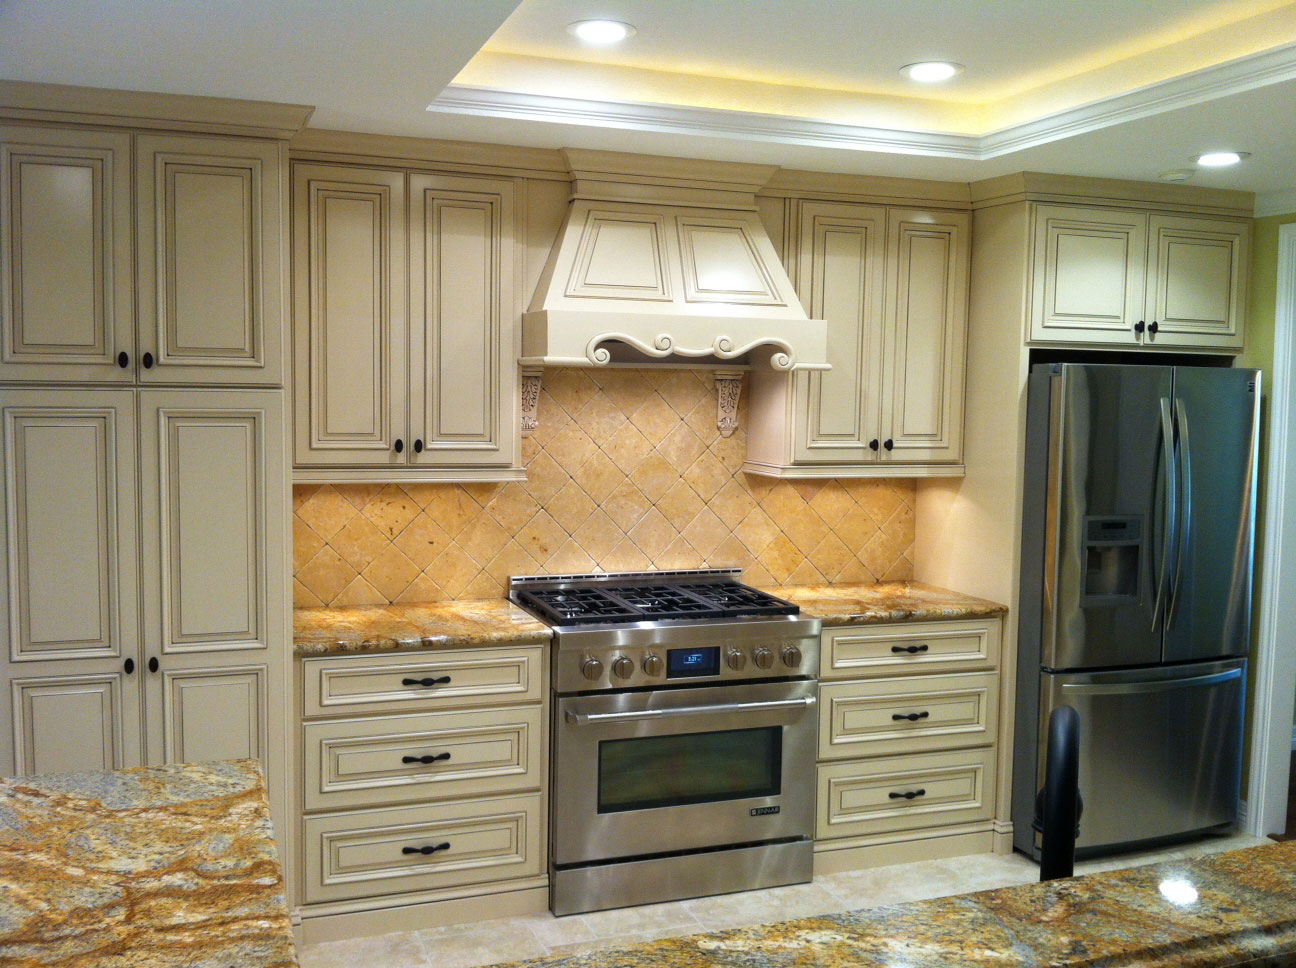 Uncategorized Mdf Kitchen Cabinets Reviews ornate cabinet doors kitchen photos taylorcraft door company 16